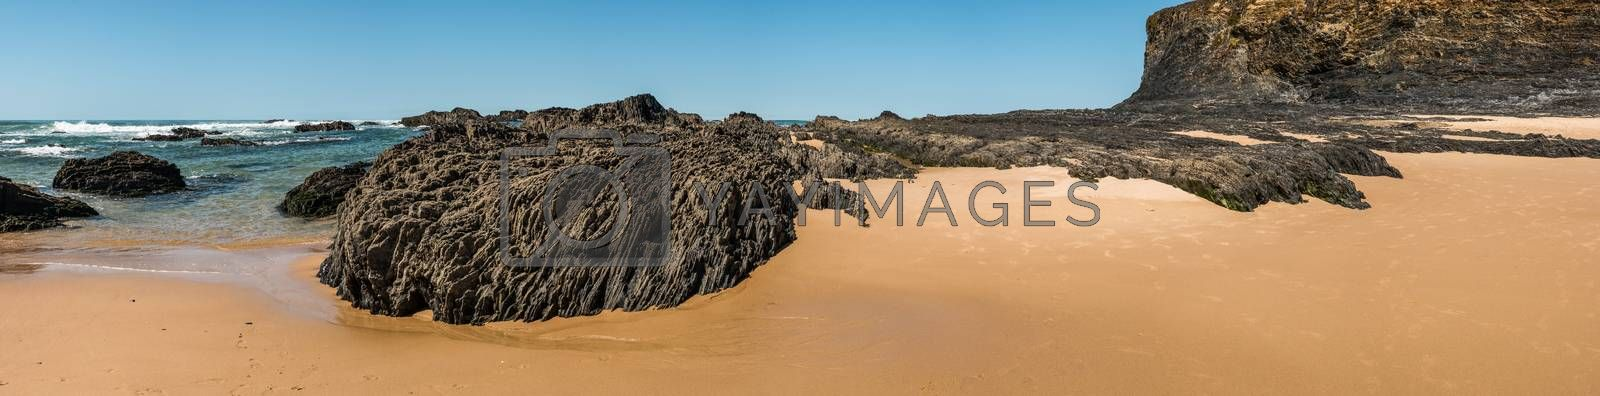 Beach with rocks in Almograve by homydesign